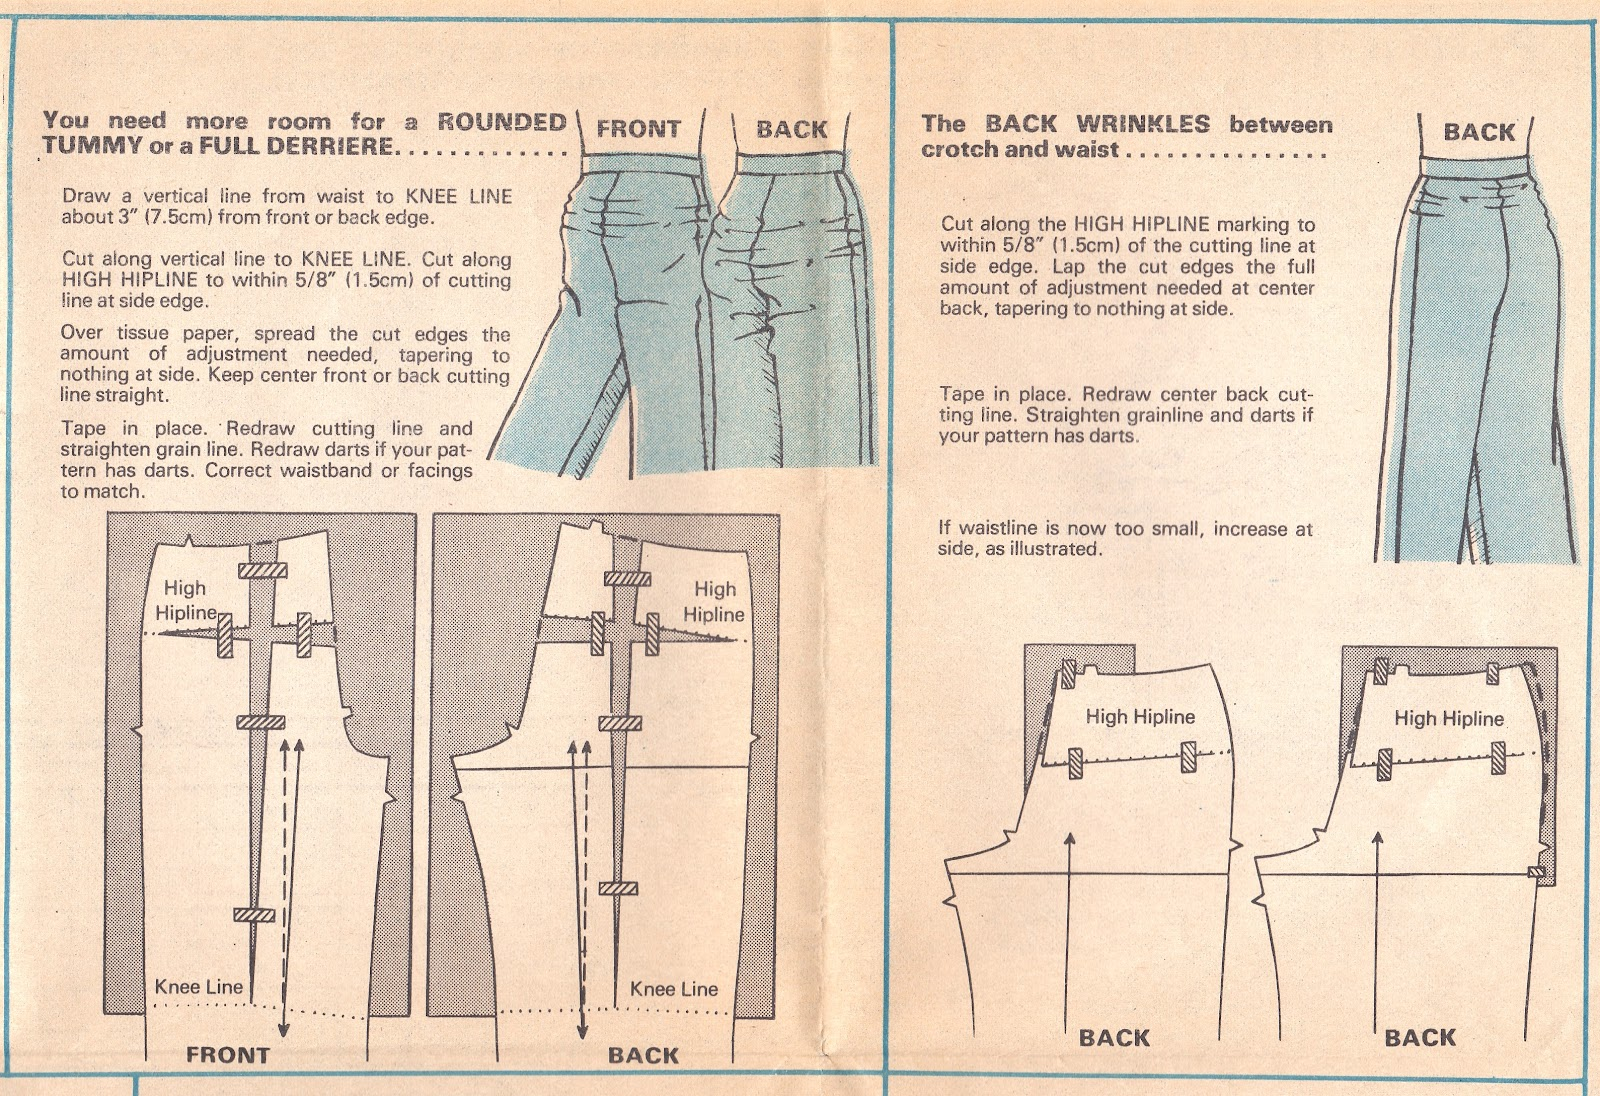 Cation designs sewing pants is easy altering your pants pattern for a rounded tummy or full derriere or swayback jeuxipadfo Image collections